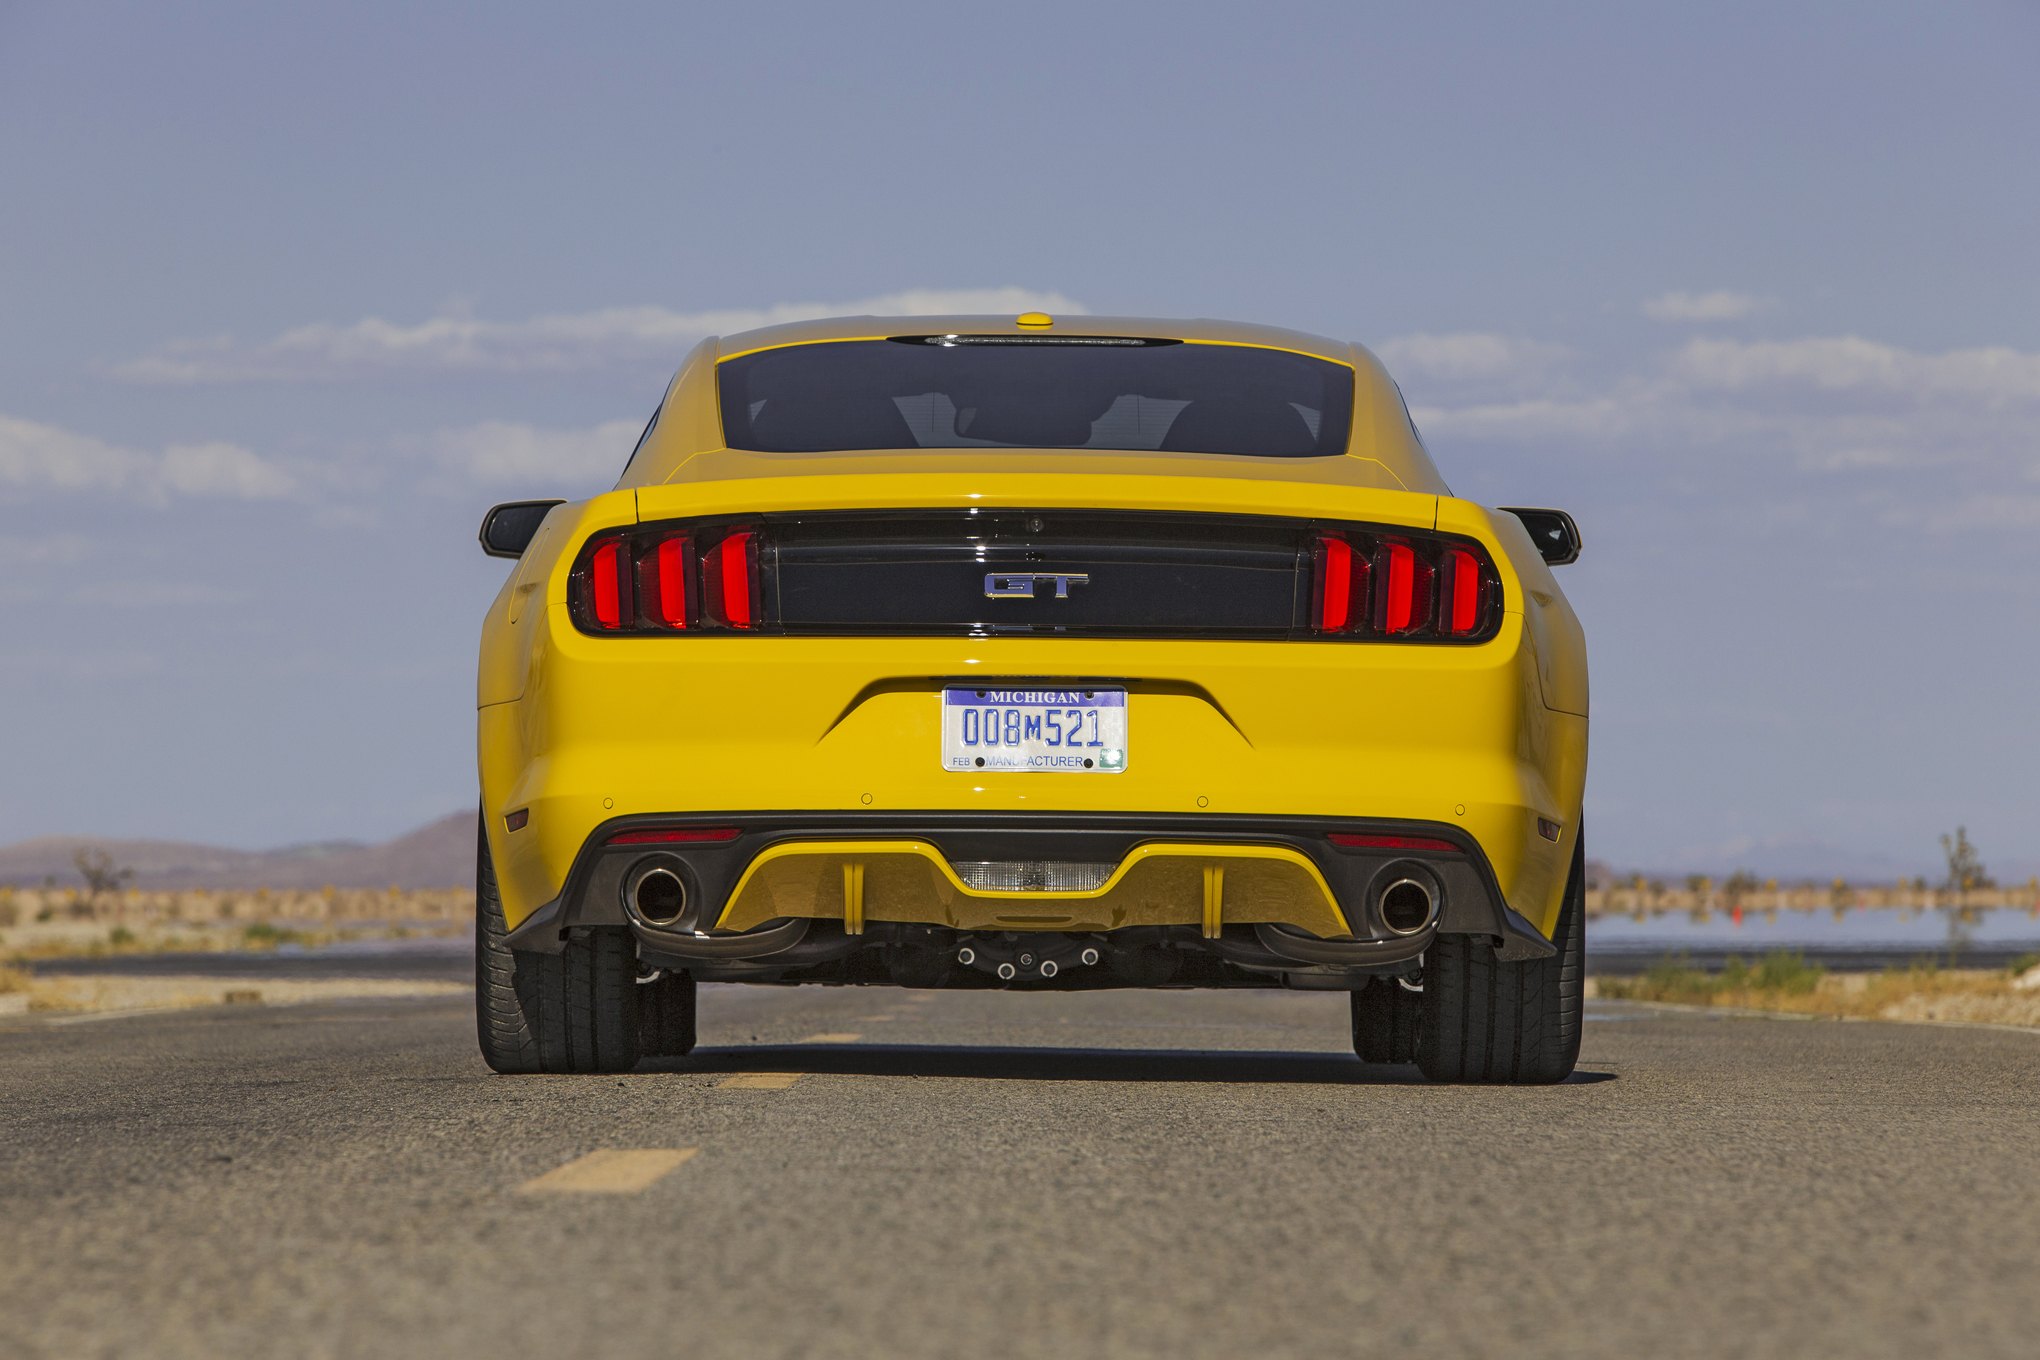 2015 Ford Mustang Gt Rear Exterior Preview (Photo 16 of 30)